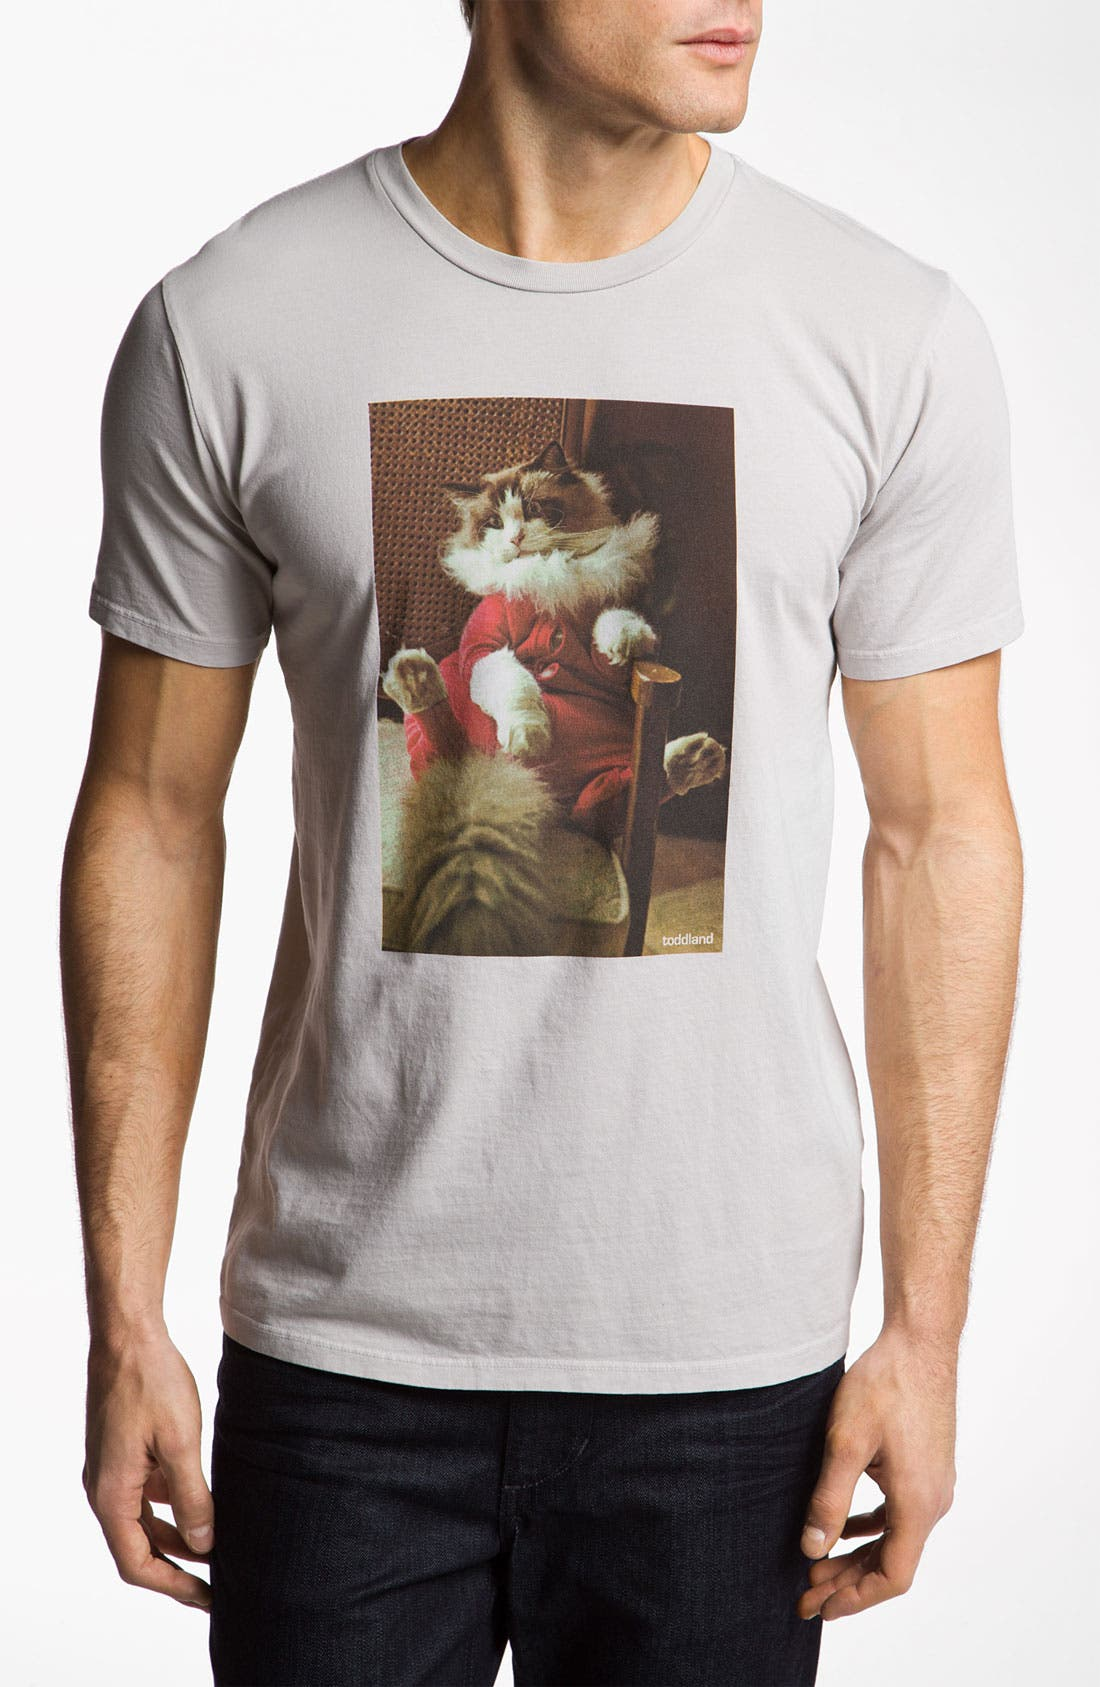 Alternate Image 1 Selected - Toddland 'Dino's Union Suit' T-Shirt